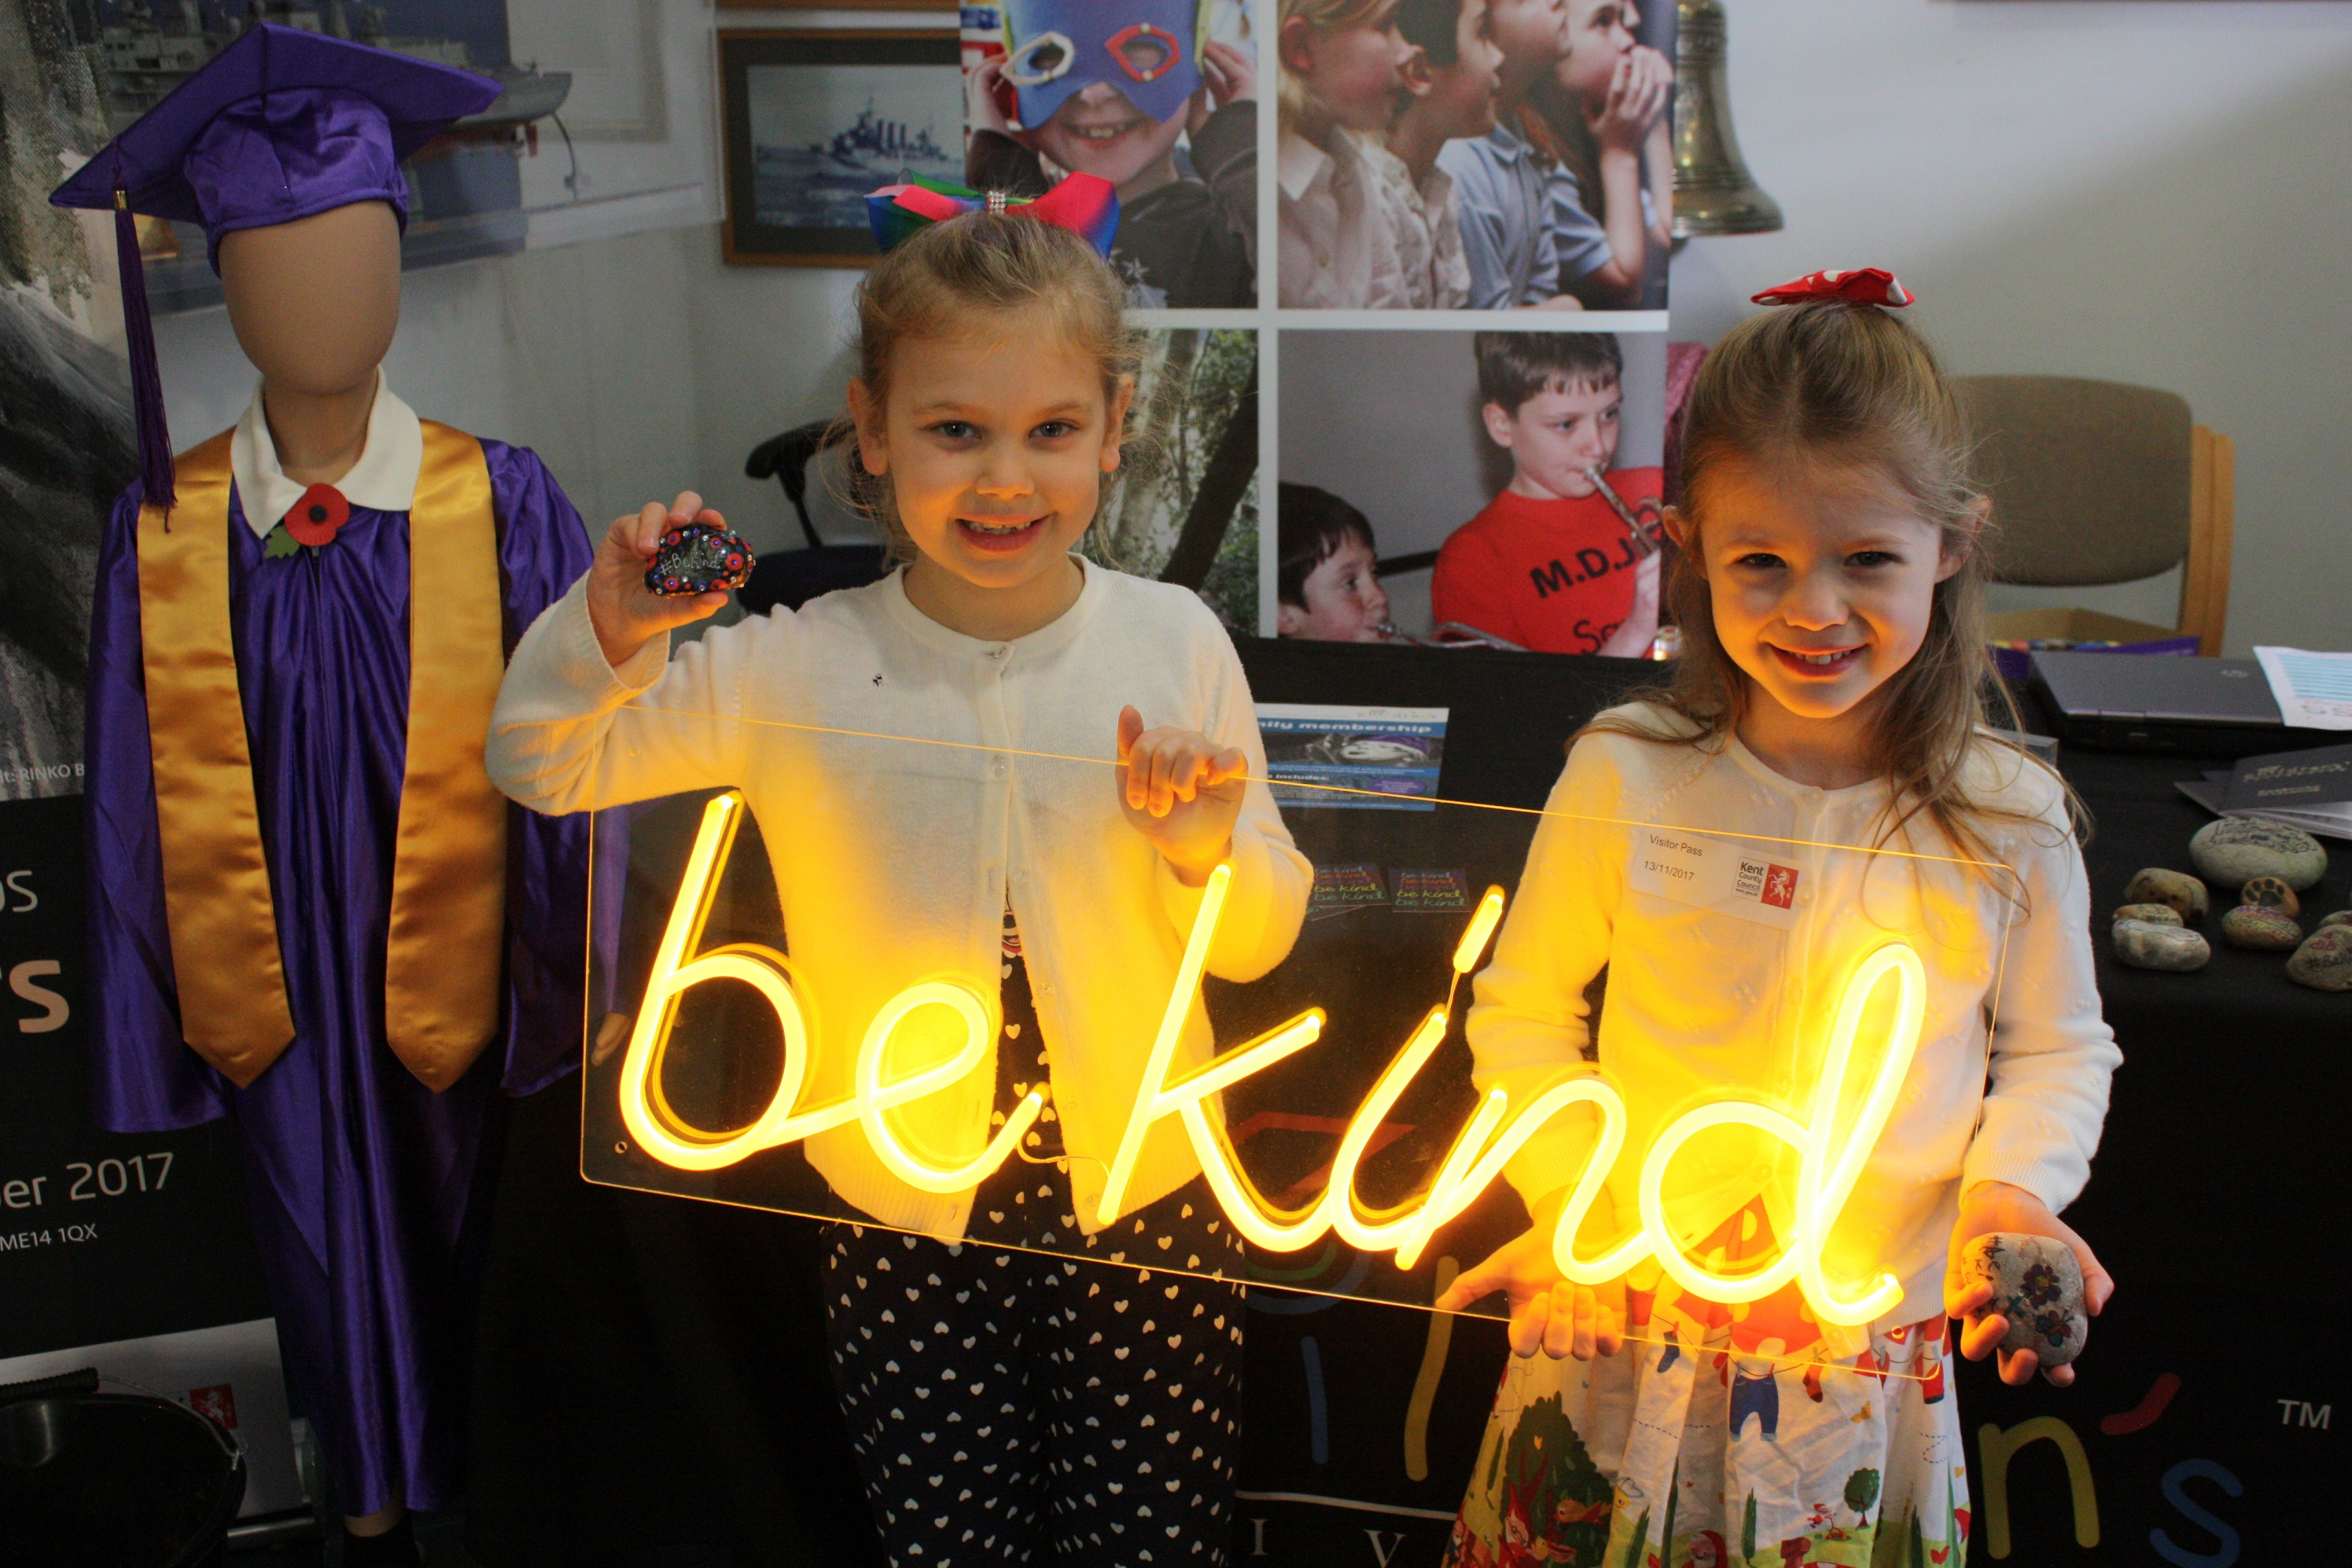 Kent Children's University one of 10 organisations in UK recognised on World Kindness Day